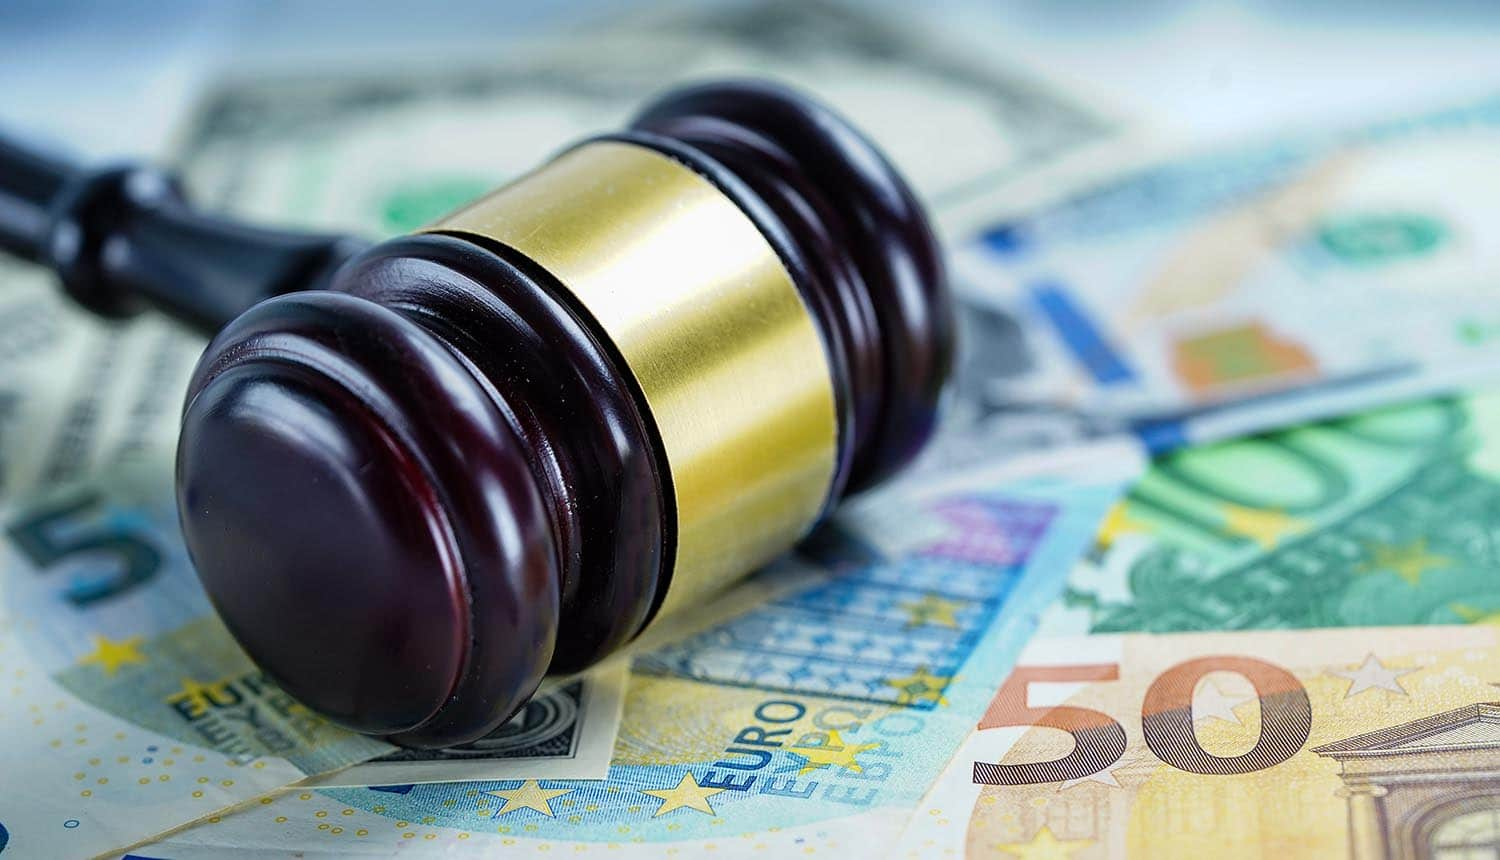 Judge hammer on Euro banknotes showing German court decision on GDPR fine